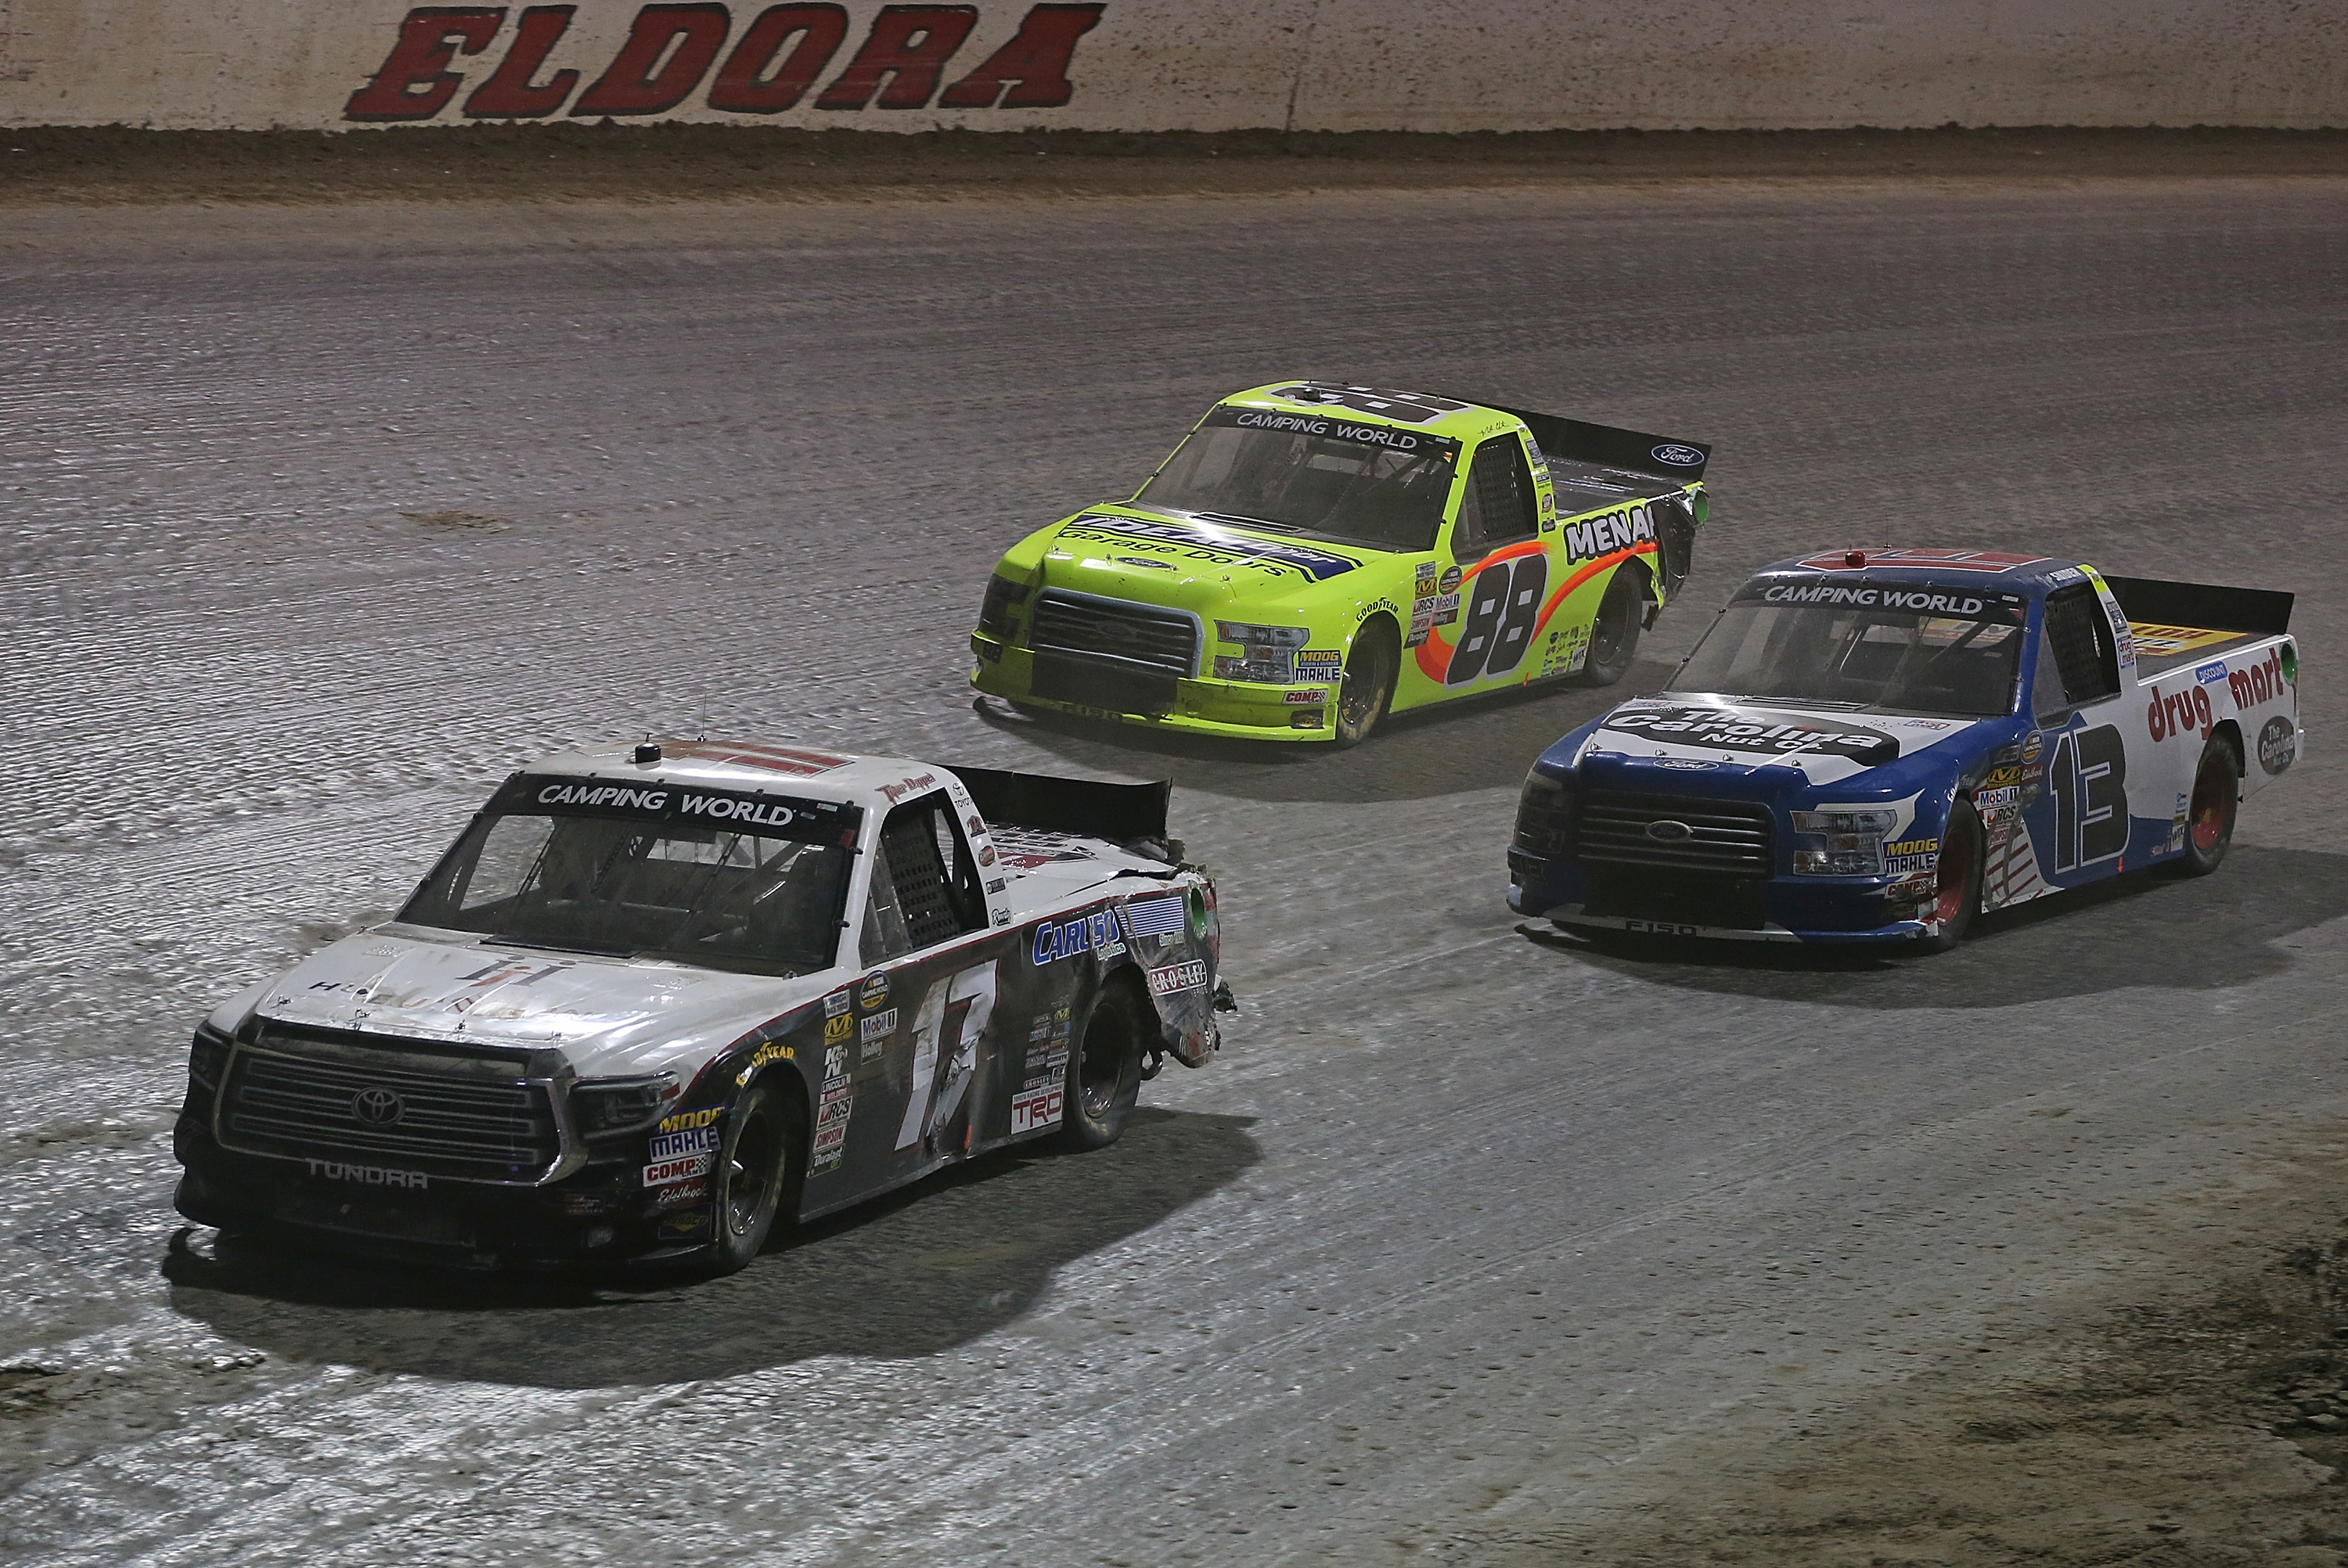 ROSSBURG, OH - JULY 18: Tyler Dippel, driver of the #17 Hue Jackson Foundation/Caruso Logistics Toyota, leads a pack of trucks during the NASCAR Camping World Truck Series Eldora Dirt Derby at Eldora Speedway on July 18, 2018 in Rossburg, Ohio. (Photo by Matt Sullivan/Getty Images) | Getty Images